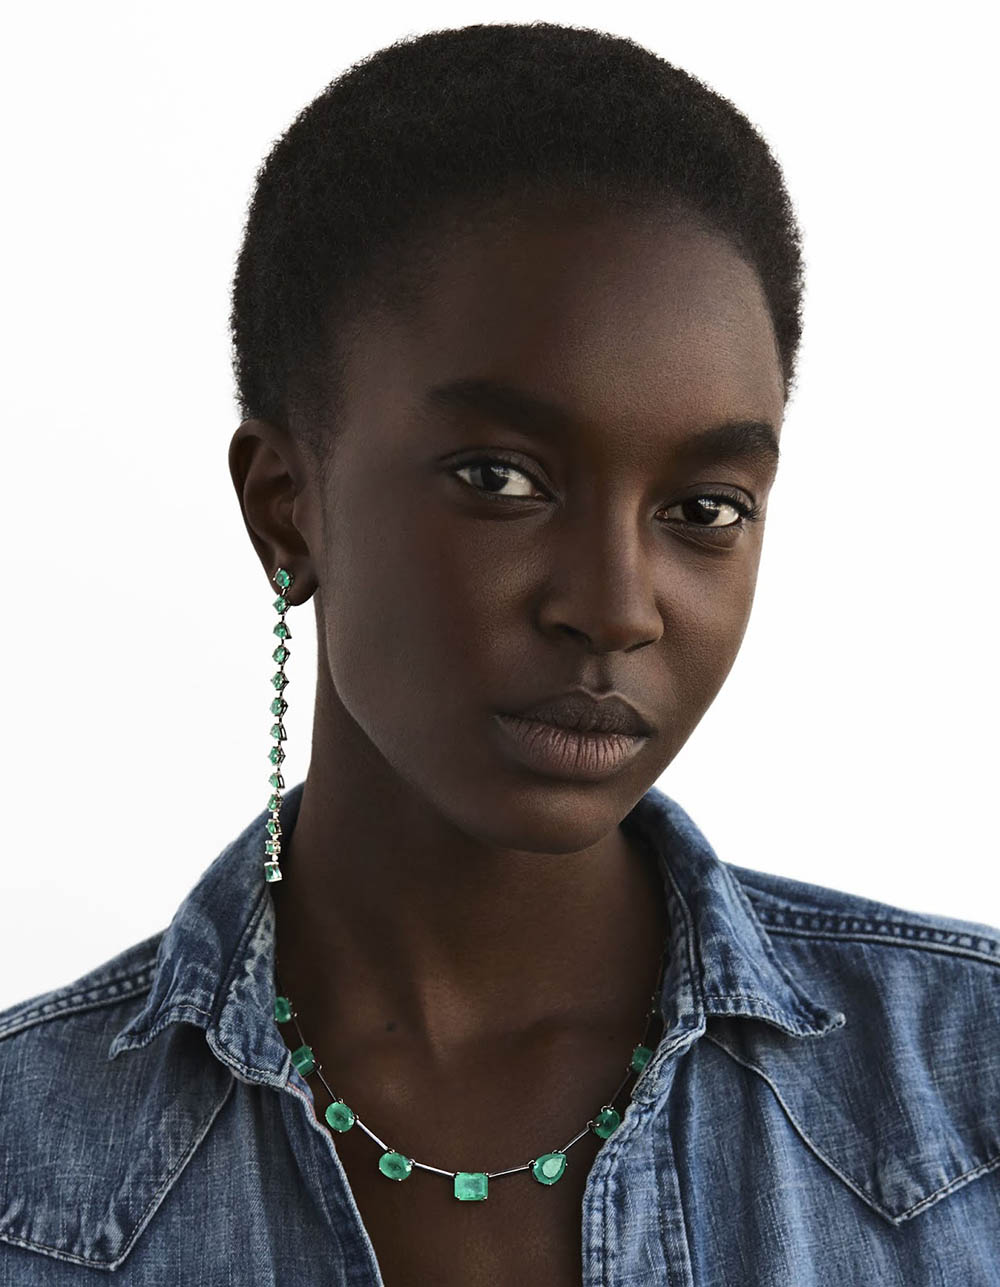 Nicole Atieno by Vanina Sorrenti for Vogue Poland July/August 2018